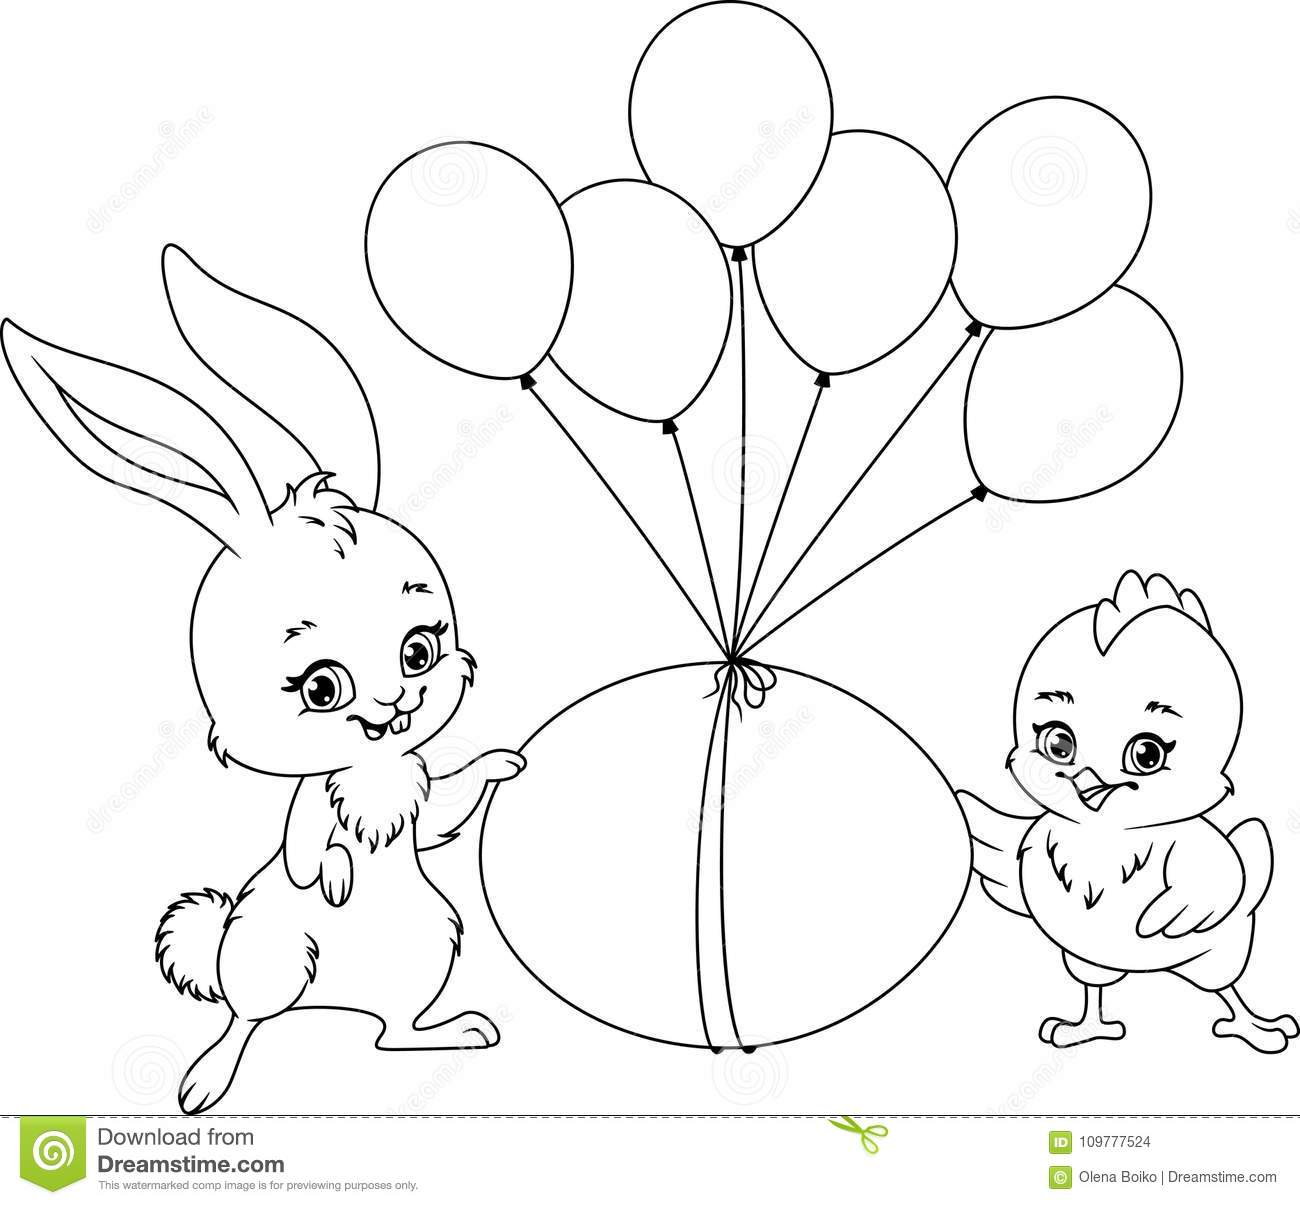 Easter Illustration Coloring Page Stock Vector - Illustration of ...